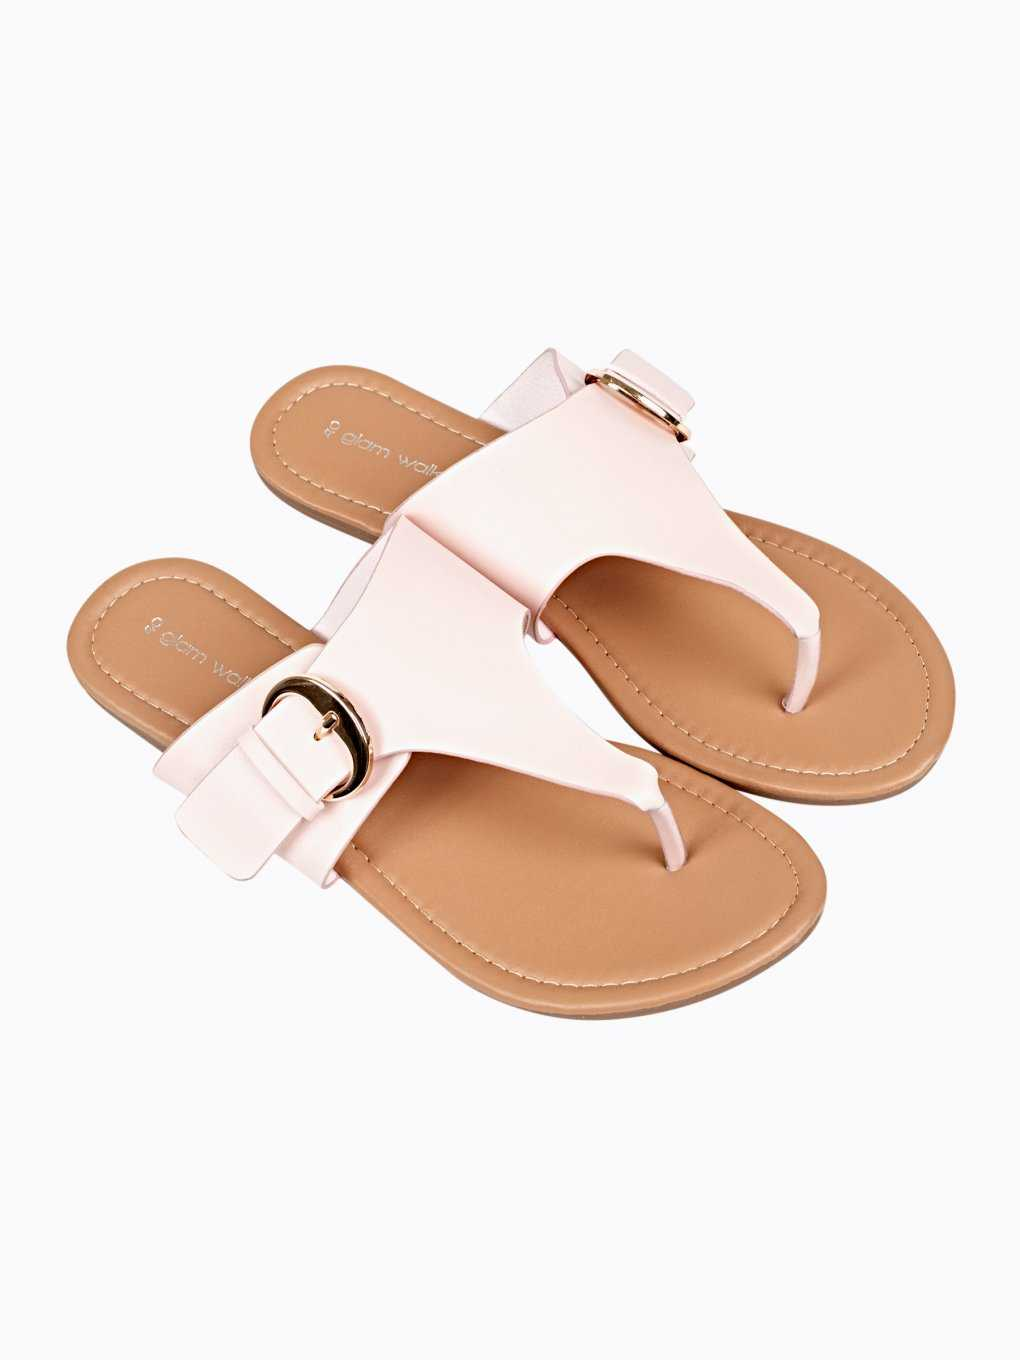 FLAT SLIDES WITH BUCKLE DETAILS